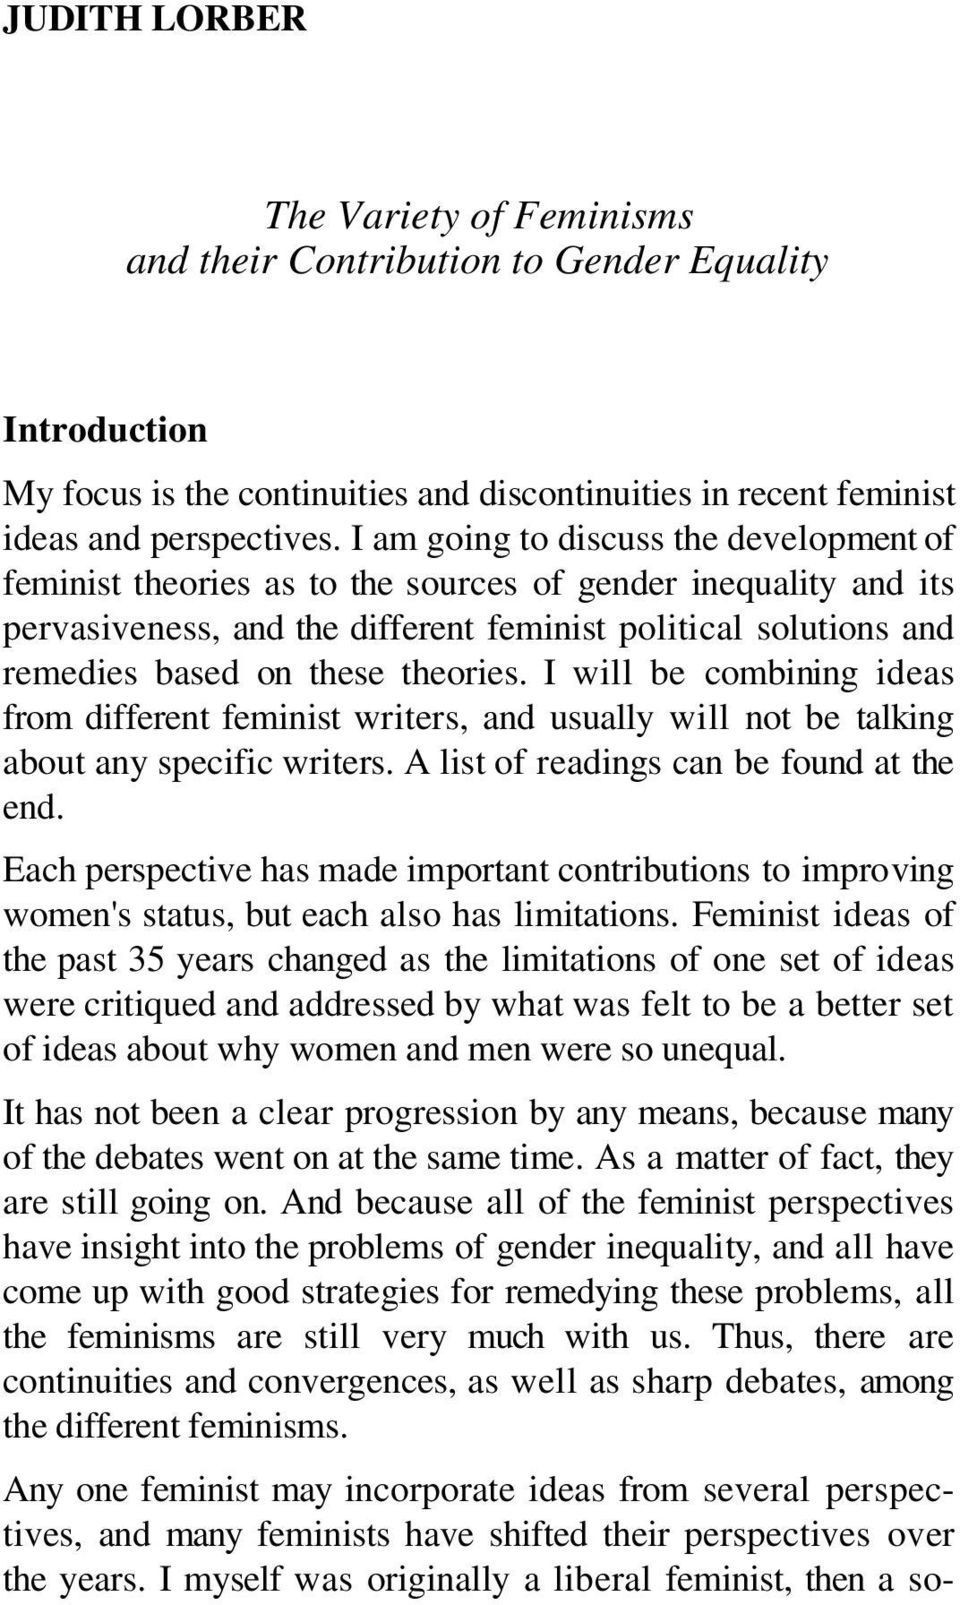 002 Essay Example Page 1 Formidable Equality Questions Gender Titles 960